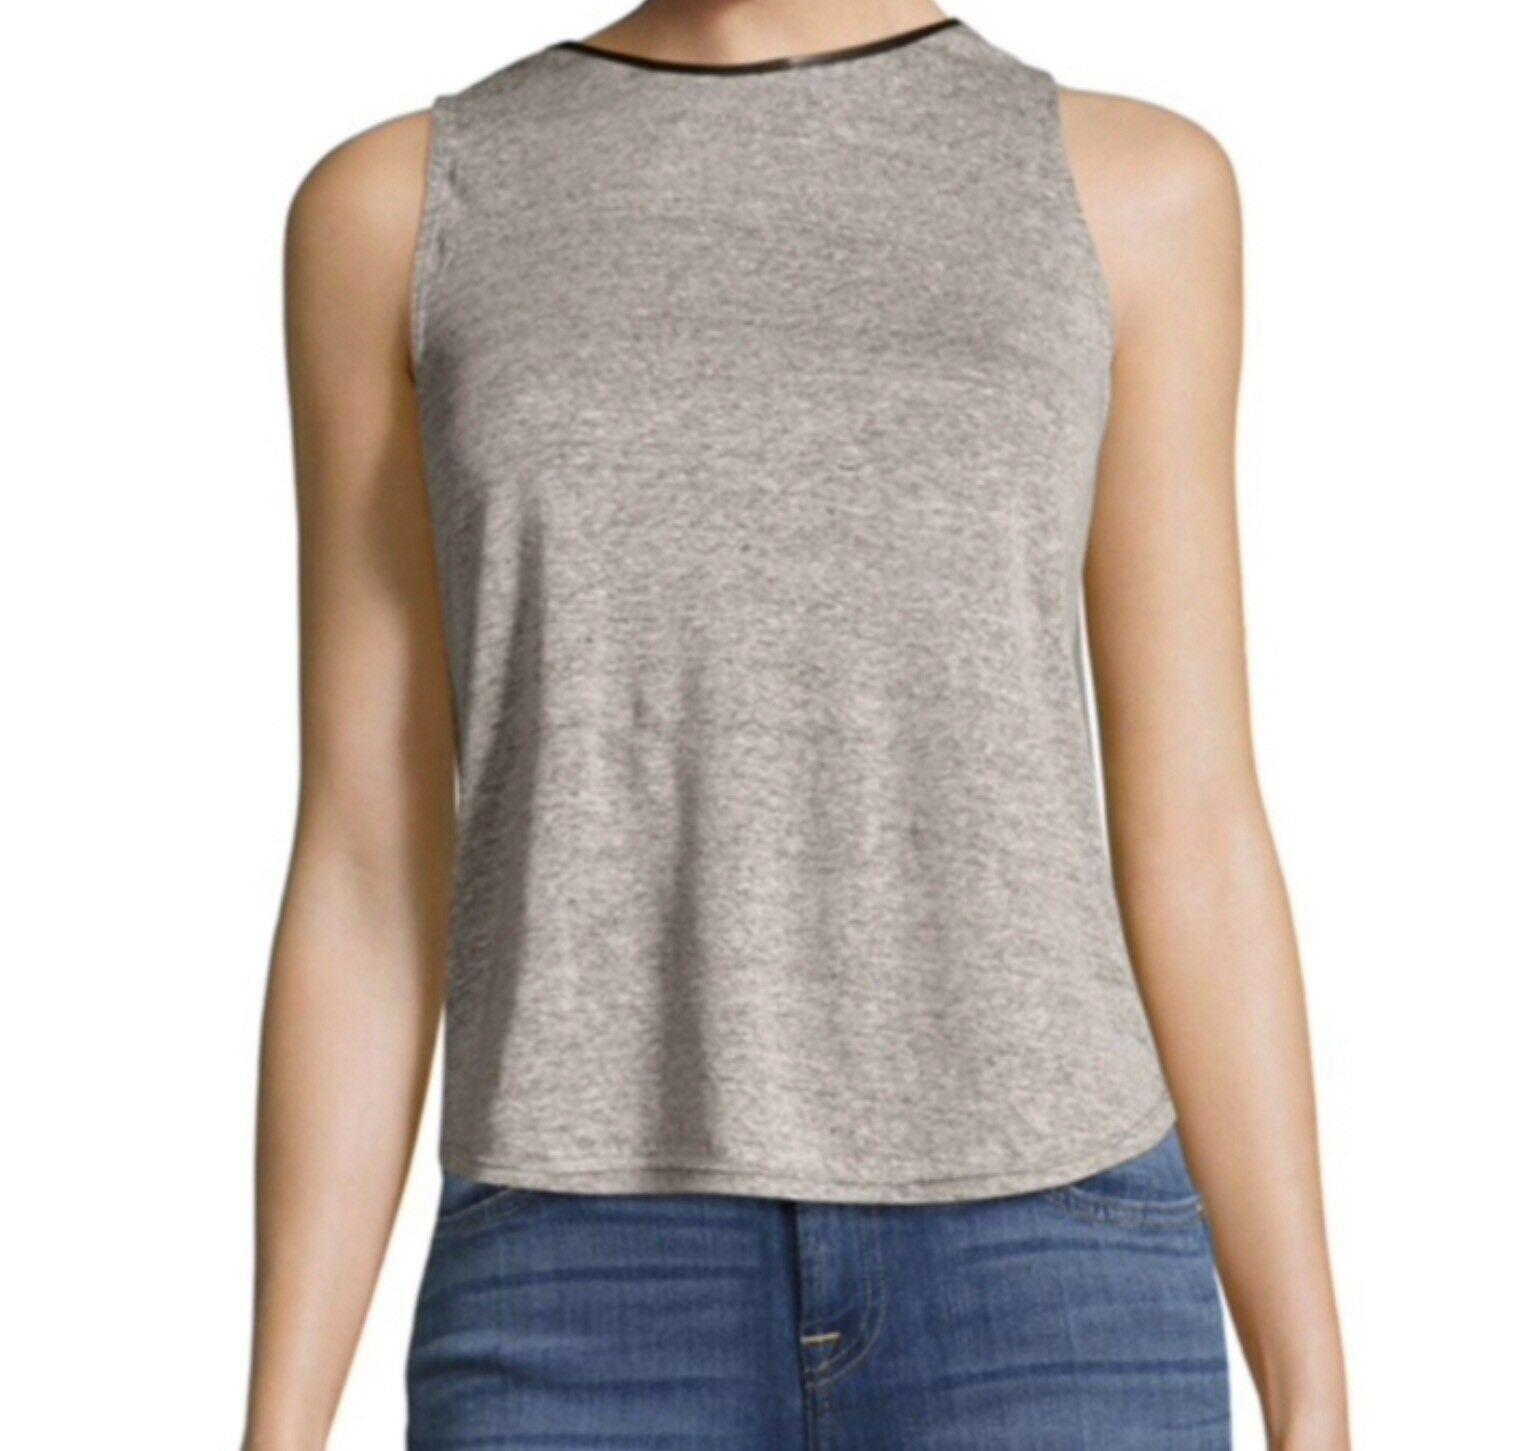 Discount Alice+olivia Woman Kassie Leather-trimmed Draped Linen-blend Top Gray Size L Alice & Olivia Cheap Big Discount EhEhDakPiD